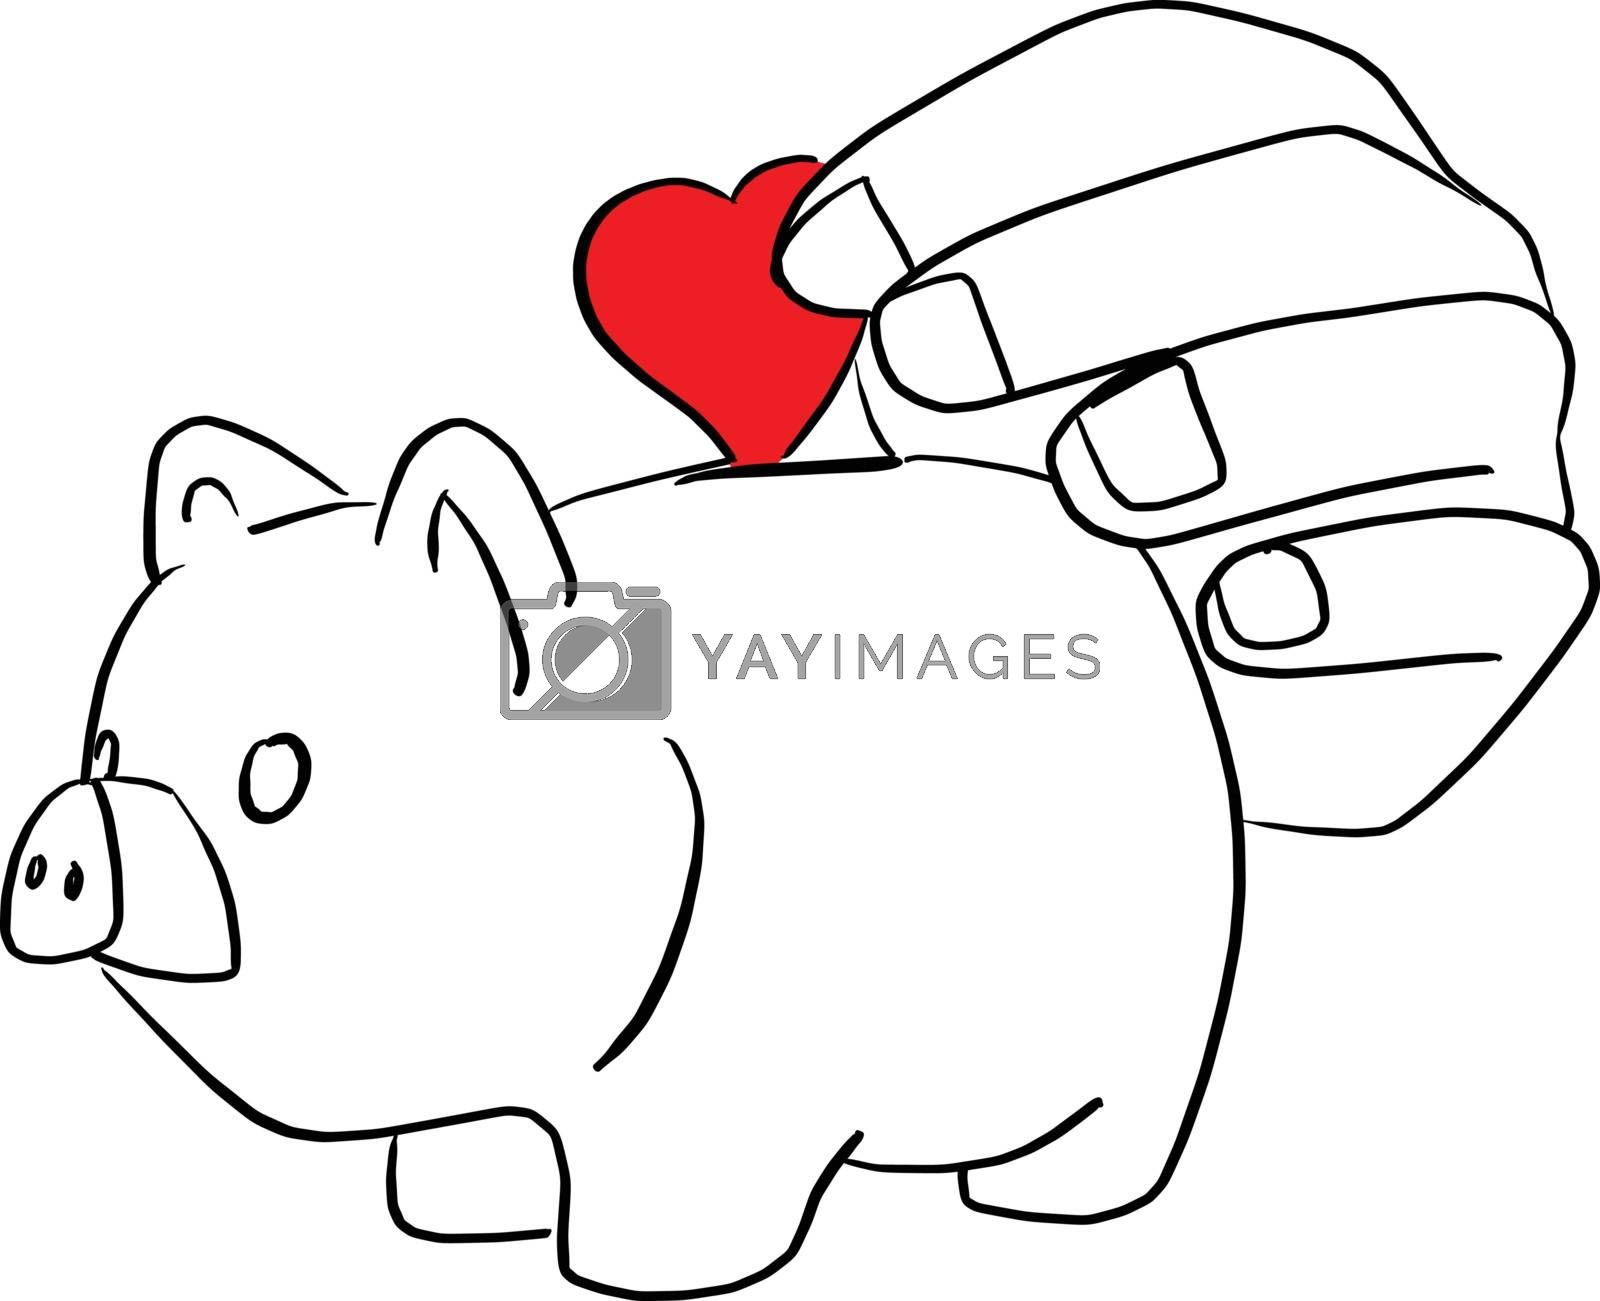 close-up hand putting red heart in piggy bank vector illustration sketch doodle hand drawn with black lines isolated on white background. love charity and relief work.